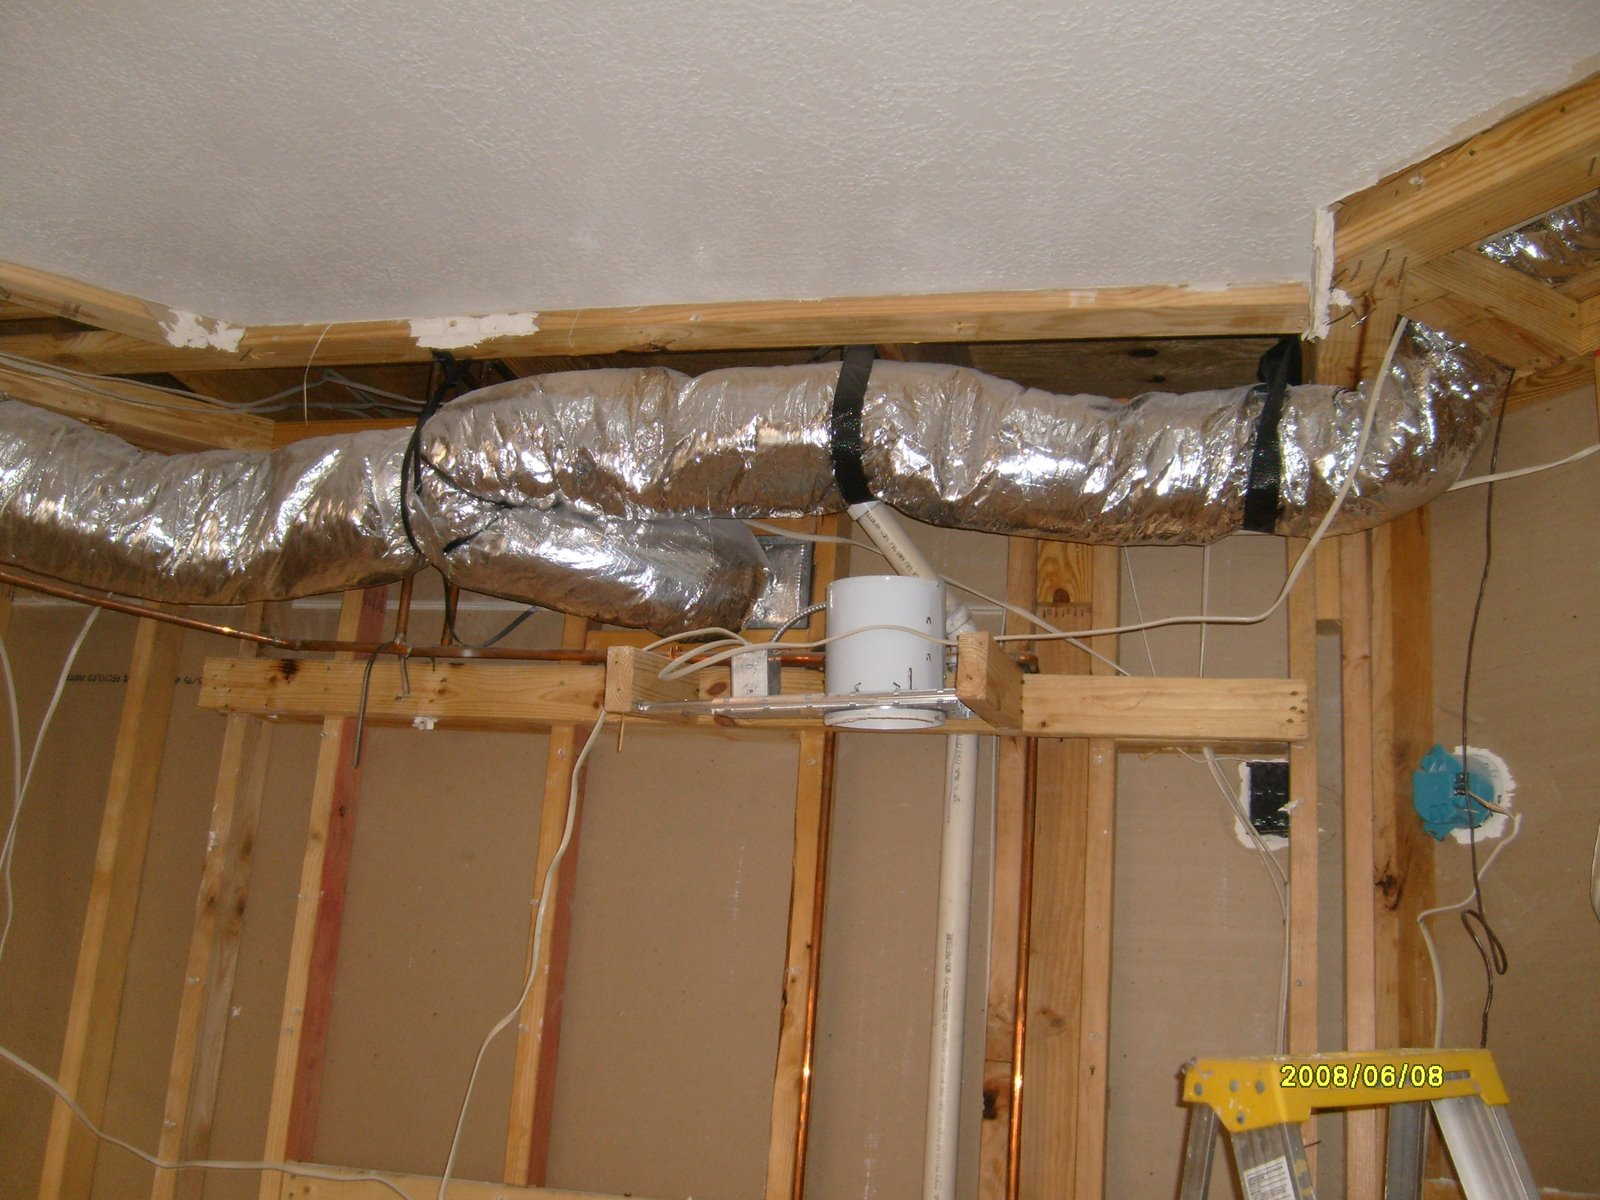 [Ducting,+electrical,+pipes+to+relocate.jpg]